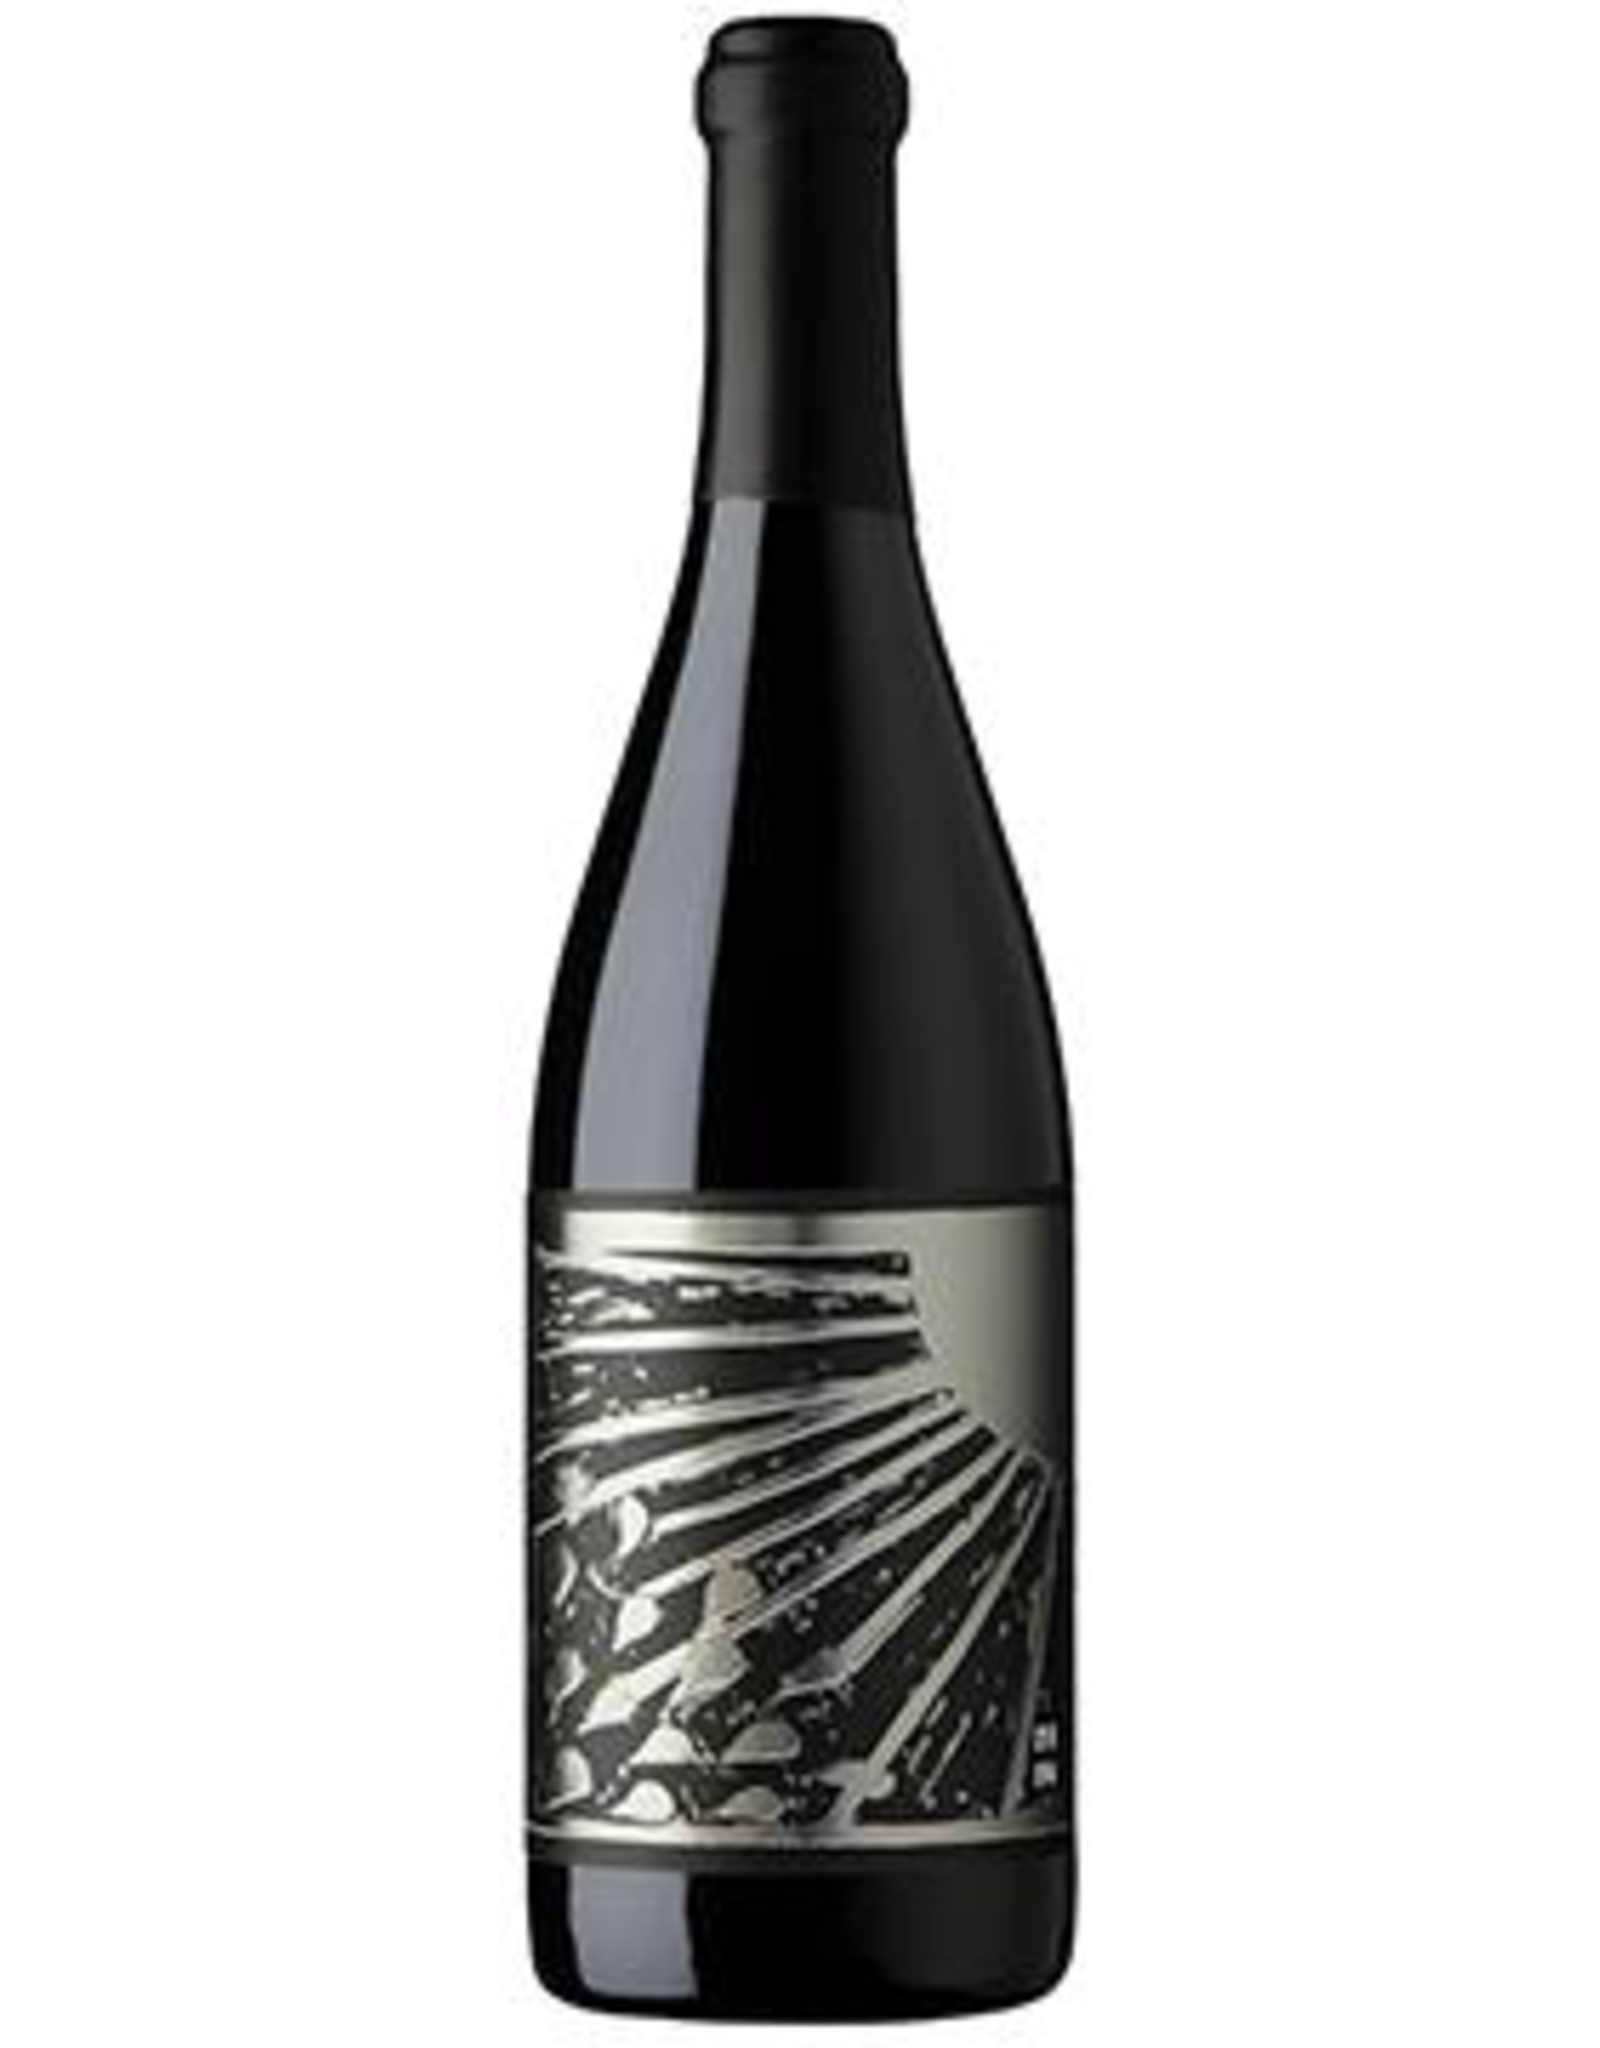 Red Wine 2014, Saxum James Berry Vineyard, Red Rhone Blend, Willow Creek District Paso Robles, Central Coast, California, 15.8%, CT95, RP98